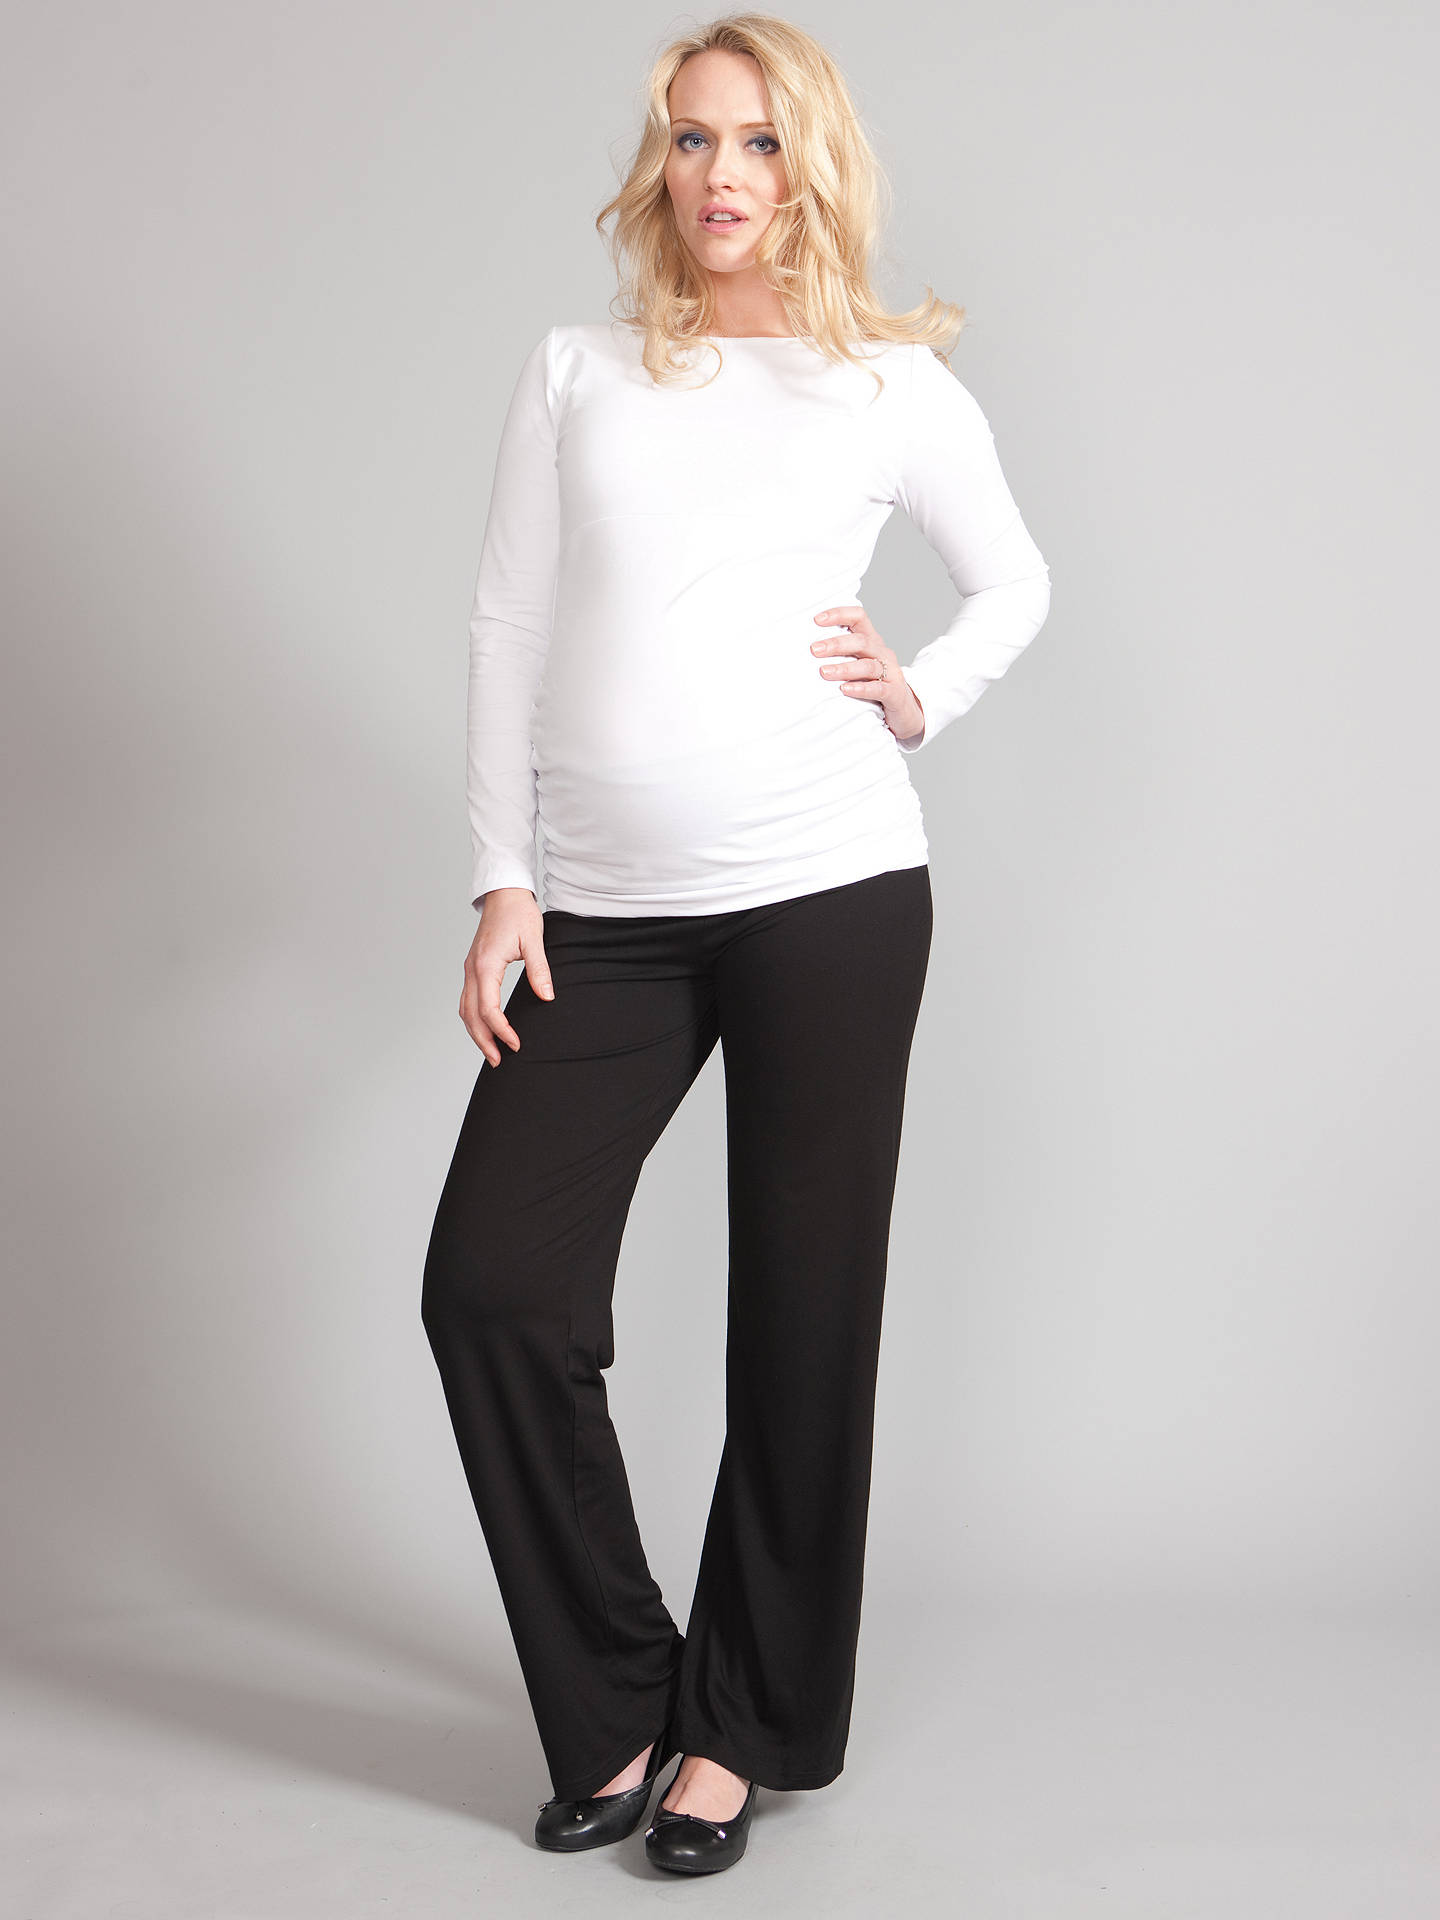 e2efd43b17662 ... Buy Séraphine Monica Roll Over Maternity Trousers, Black, 8 Online at  johnlewis.com